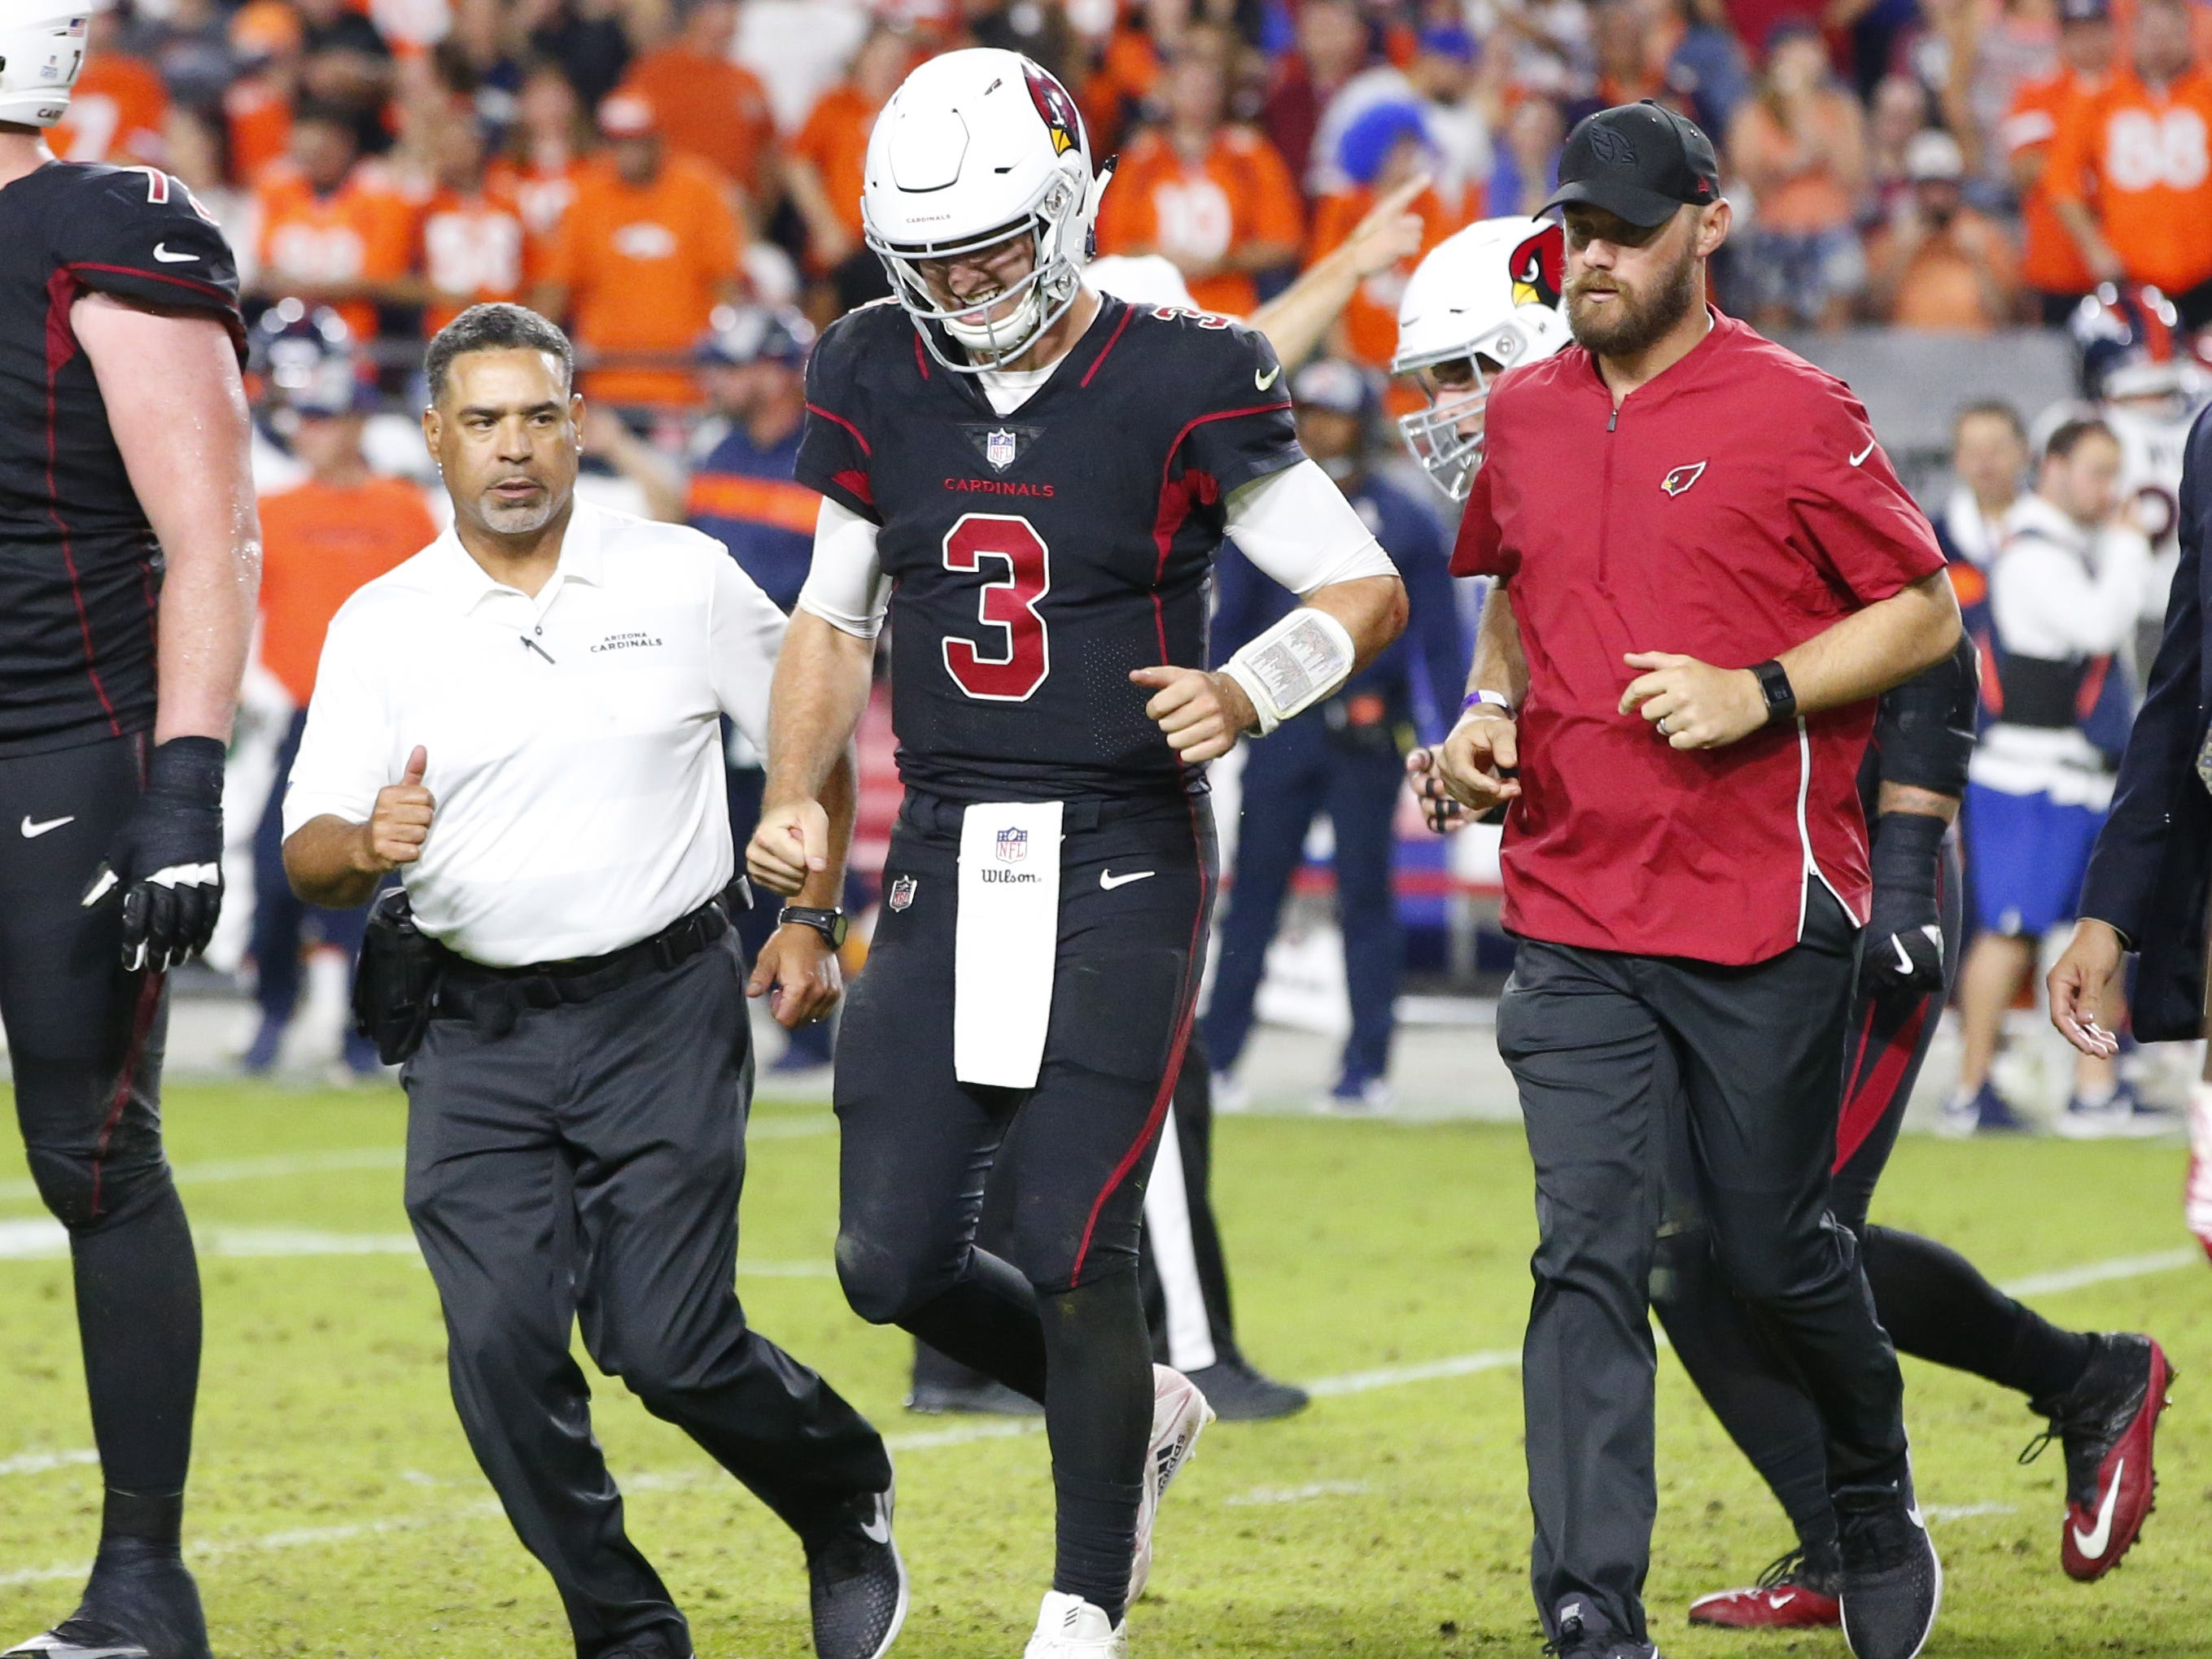 Arizona Cardinals quarterback Josh Rosen (3) walks off the field after suffering an injury during a football game against the Denver Broncos at State Farm Stadium in Glendale on October 18, 2018.